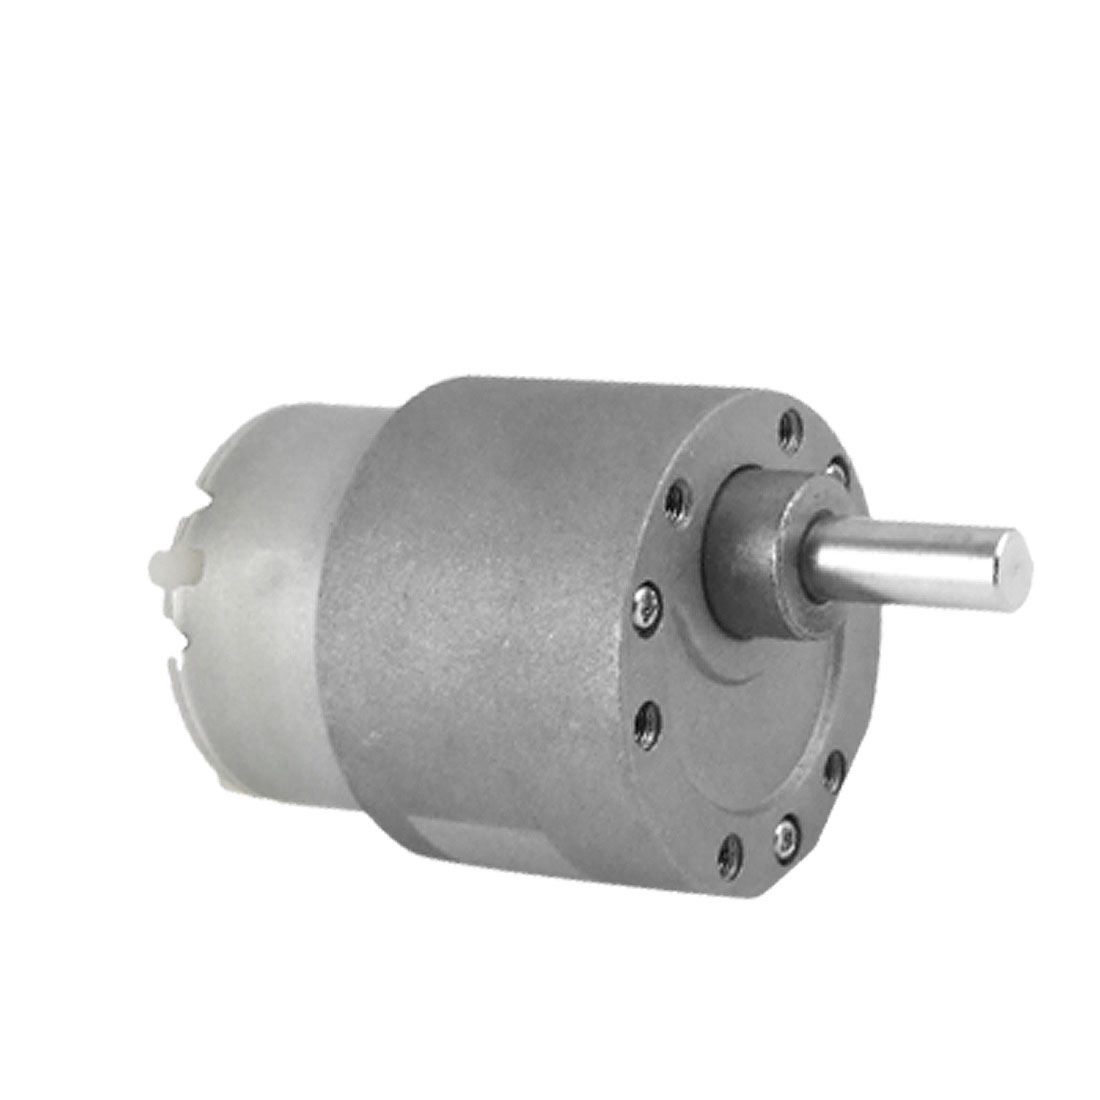 3.7cm Gearbox 15RPM DC 12V 0.5A Speed Reducing Geared Motor